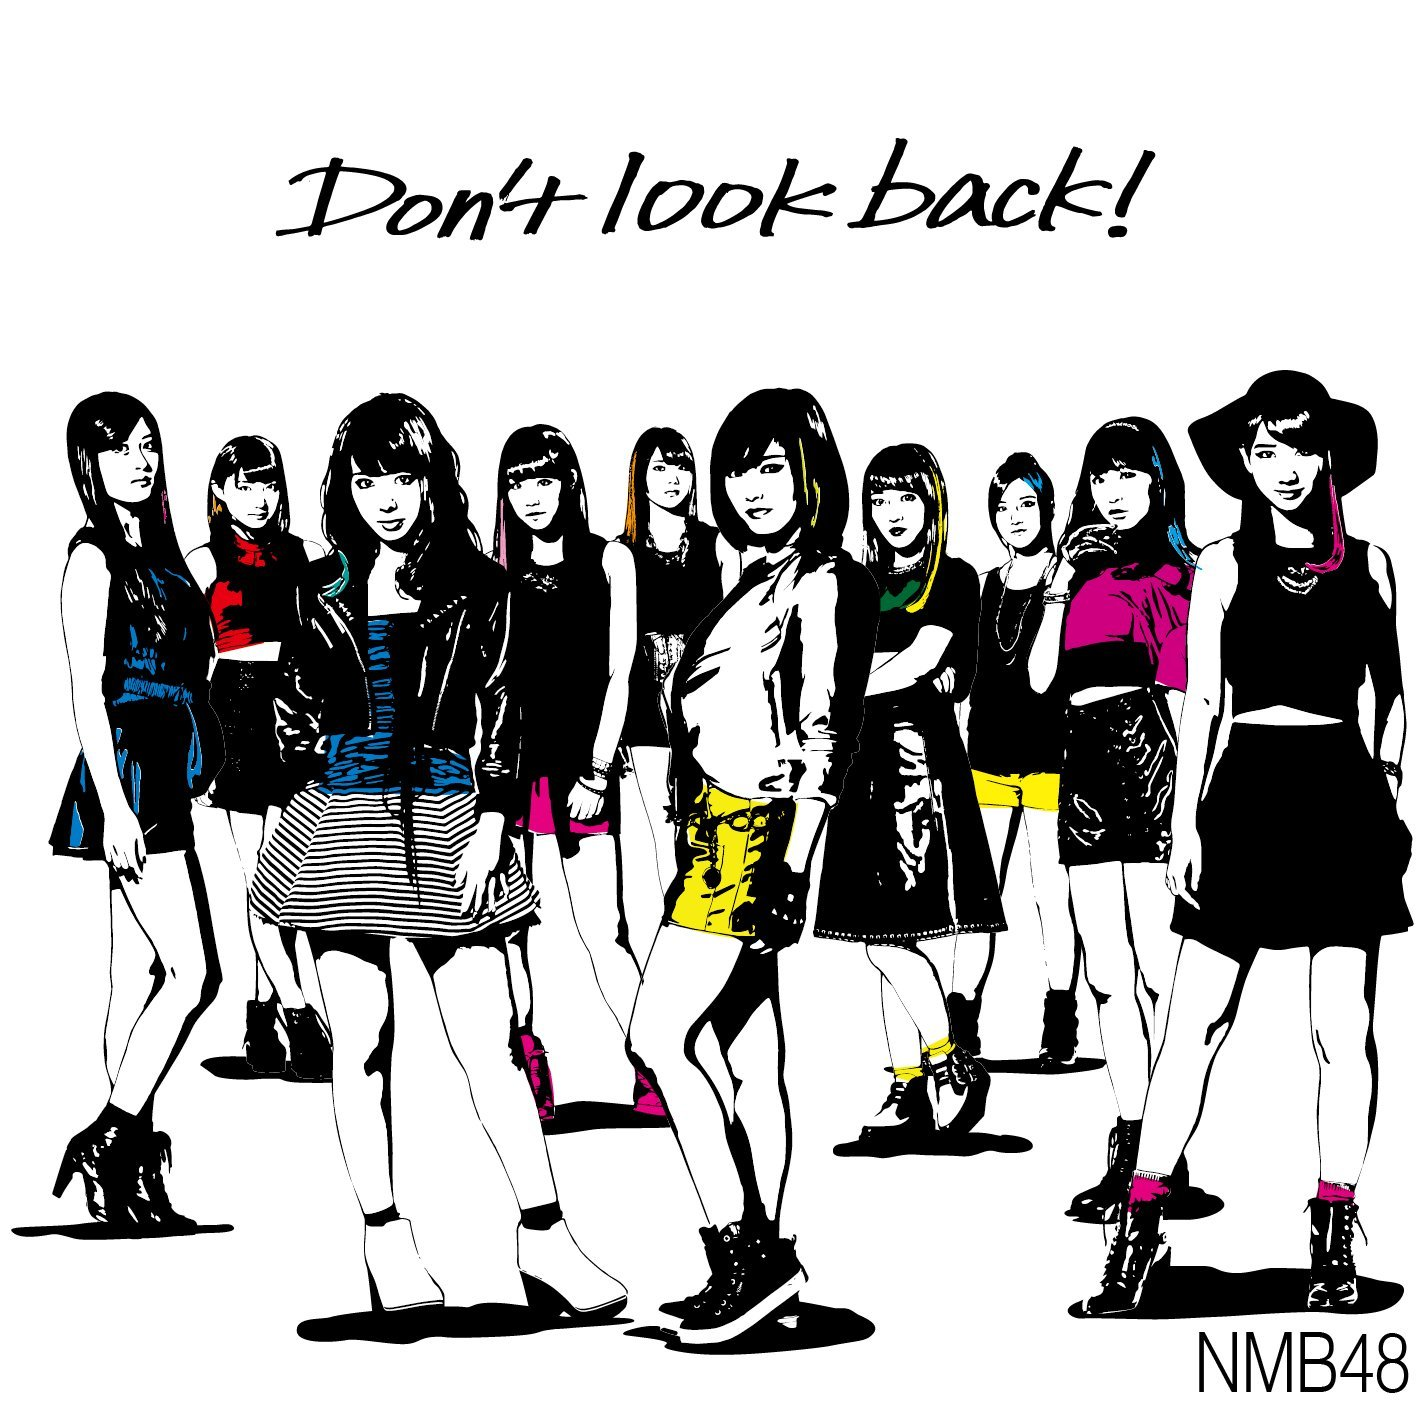 Don't look back! ジャケット  (3)